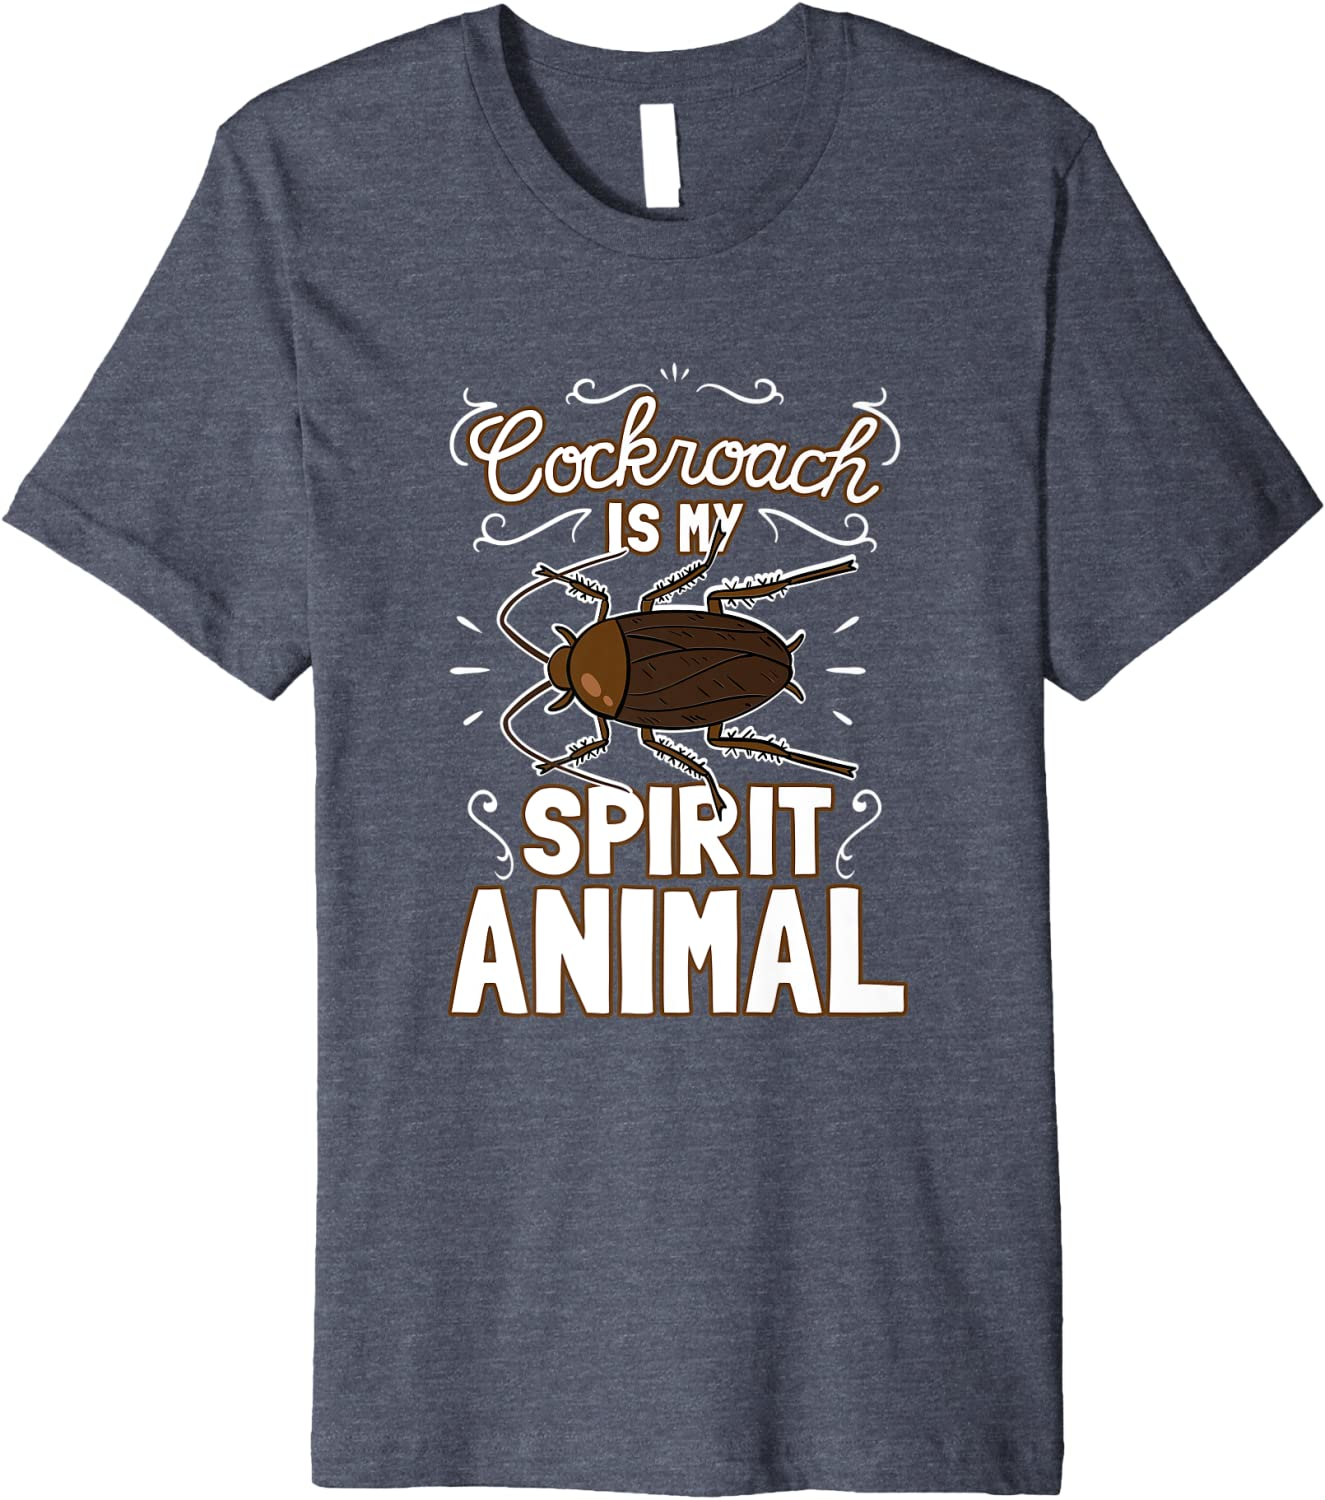 Entomology Design For Insect Fans - Cockroach Spirit Animal Premium T-Shirt-TH